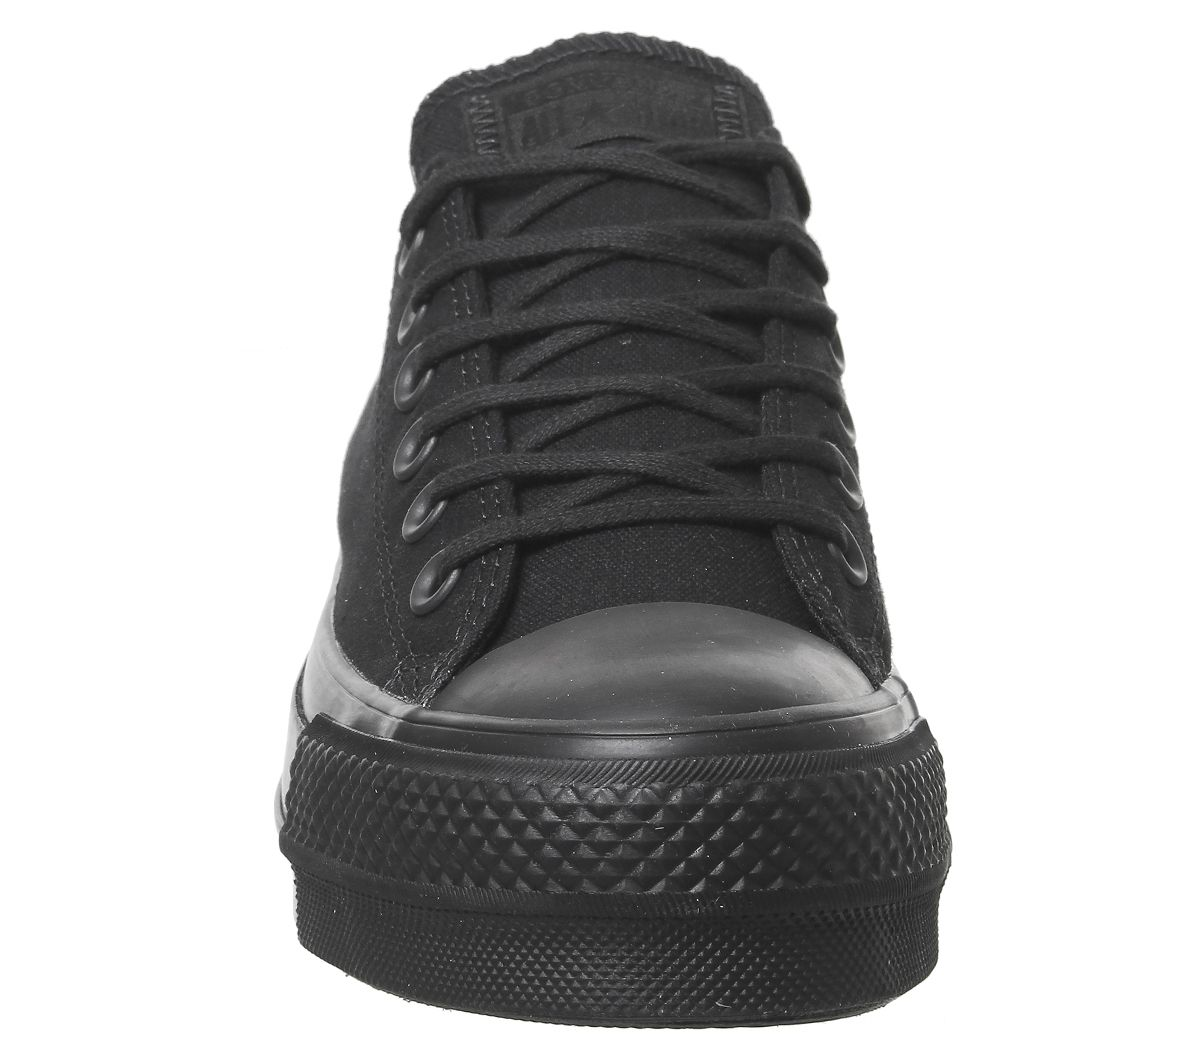 b0a38b2769b189 Sentinel Womens Converse All Star Low Platform Trainers Black Mono Trainers  Shoes